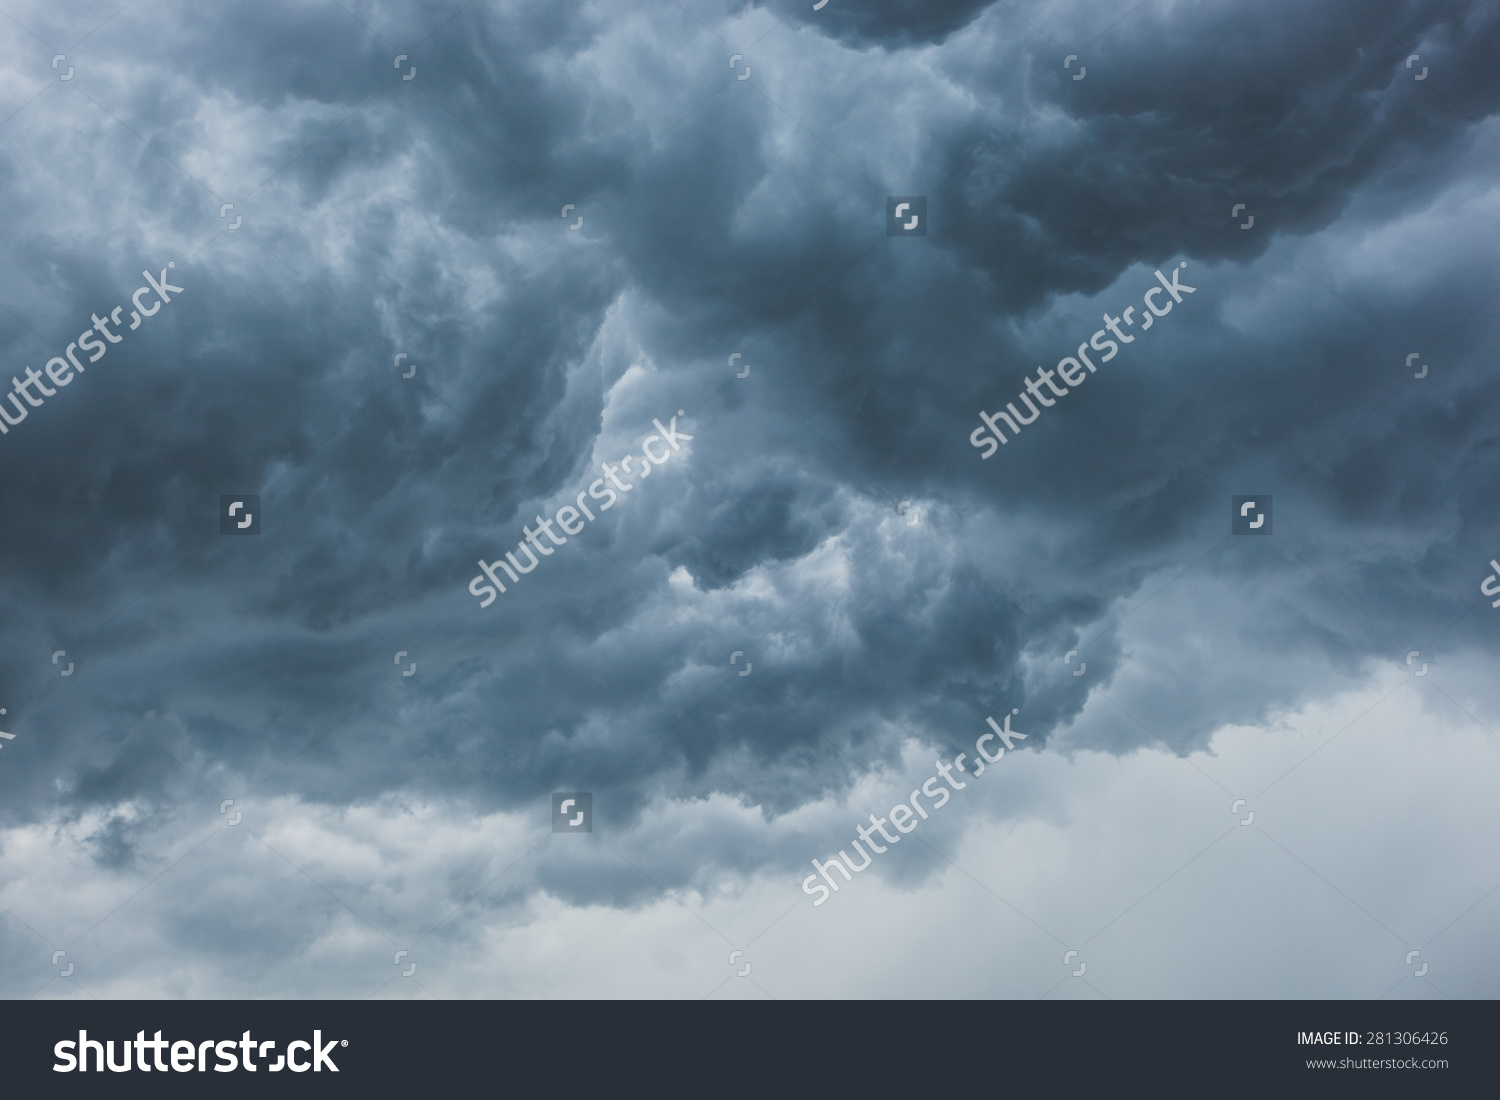 Gloomy Sky clipart #2, Download drawings